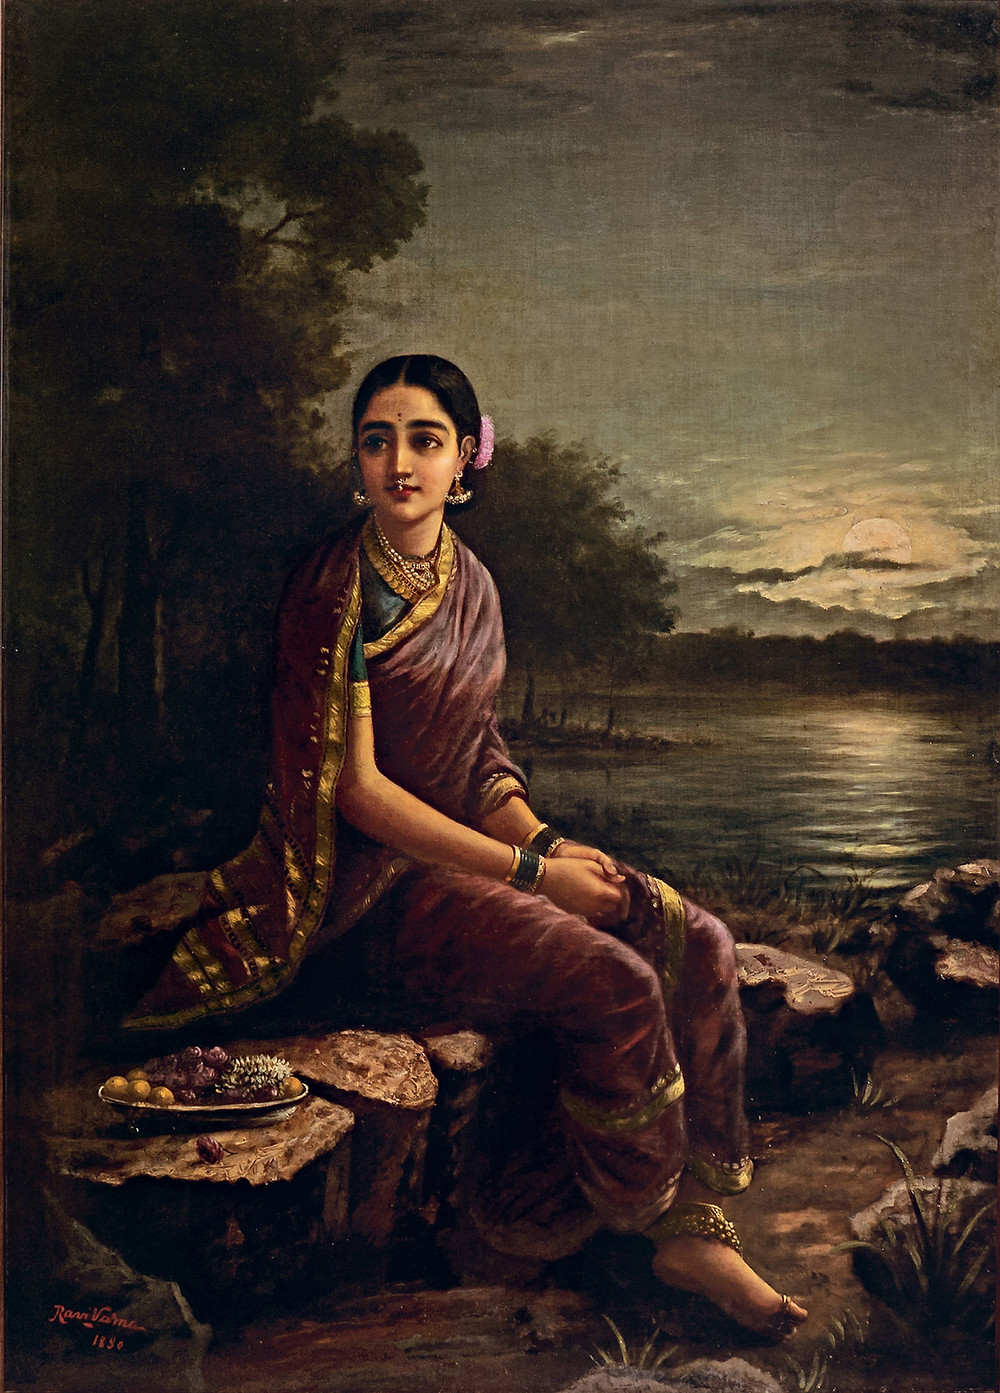 Raja Ravi Varma: Radha In The Moonlight, 1890